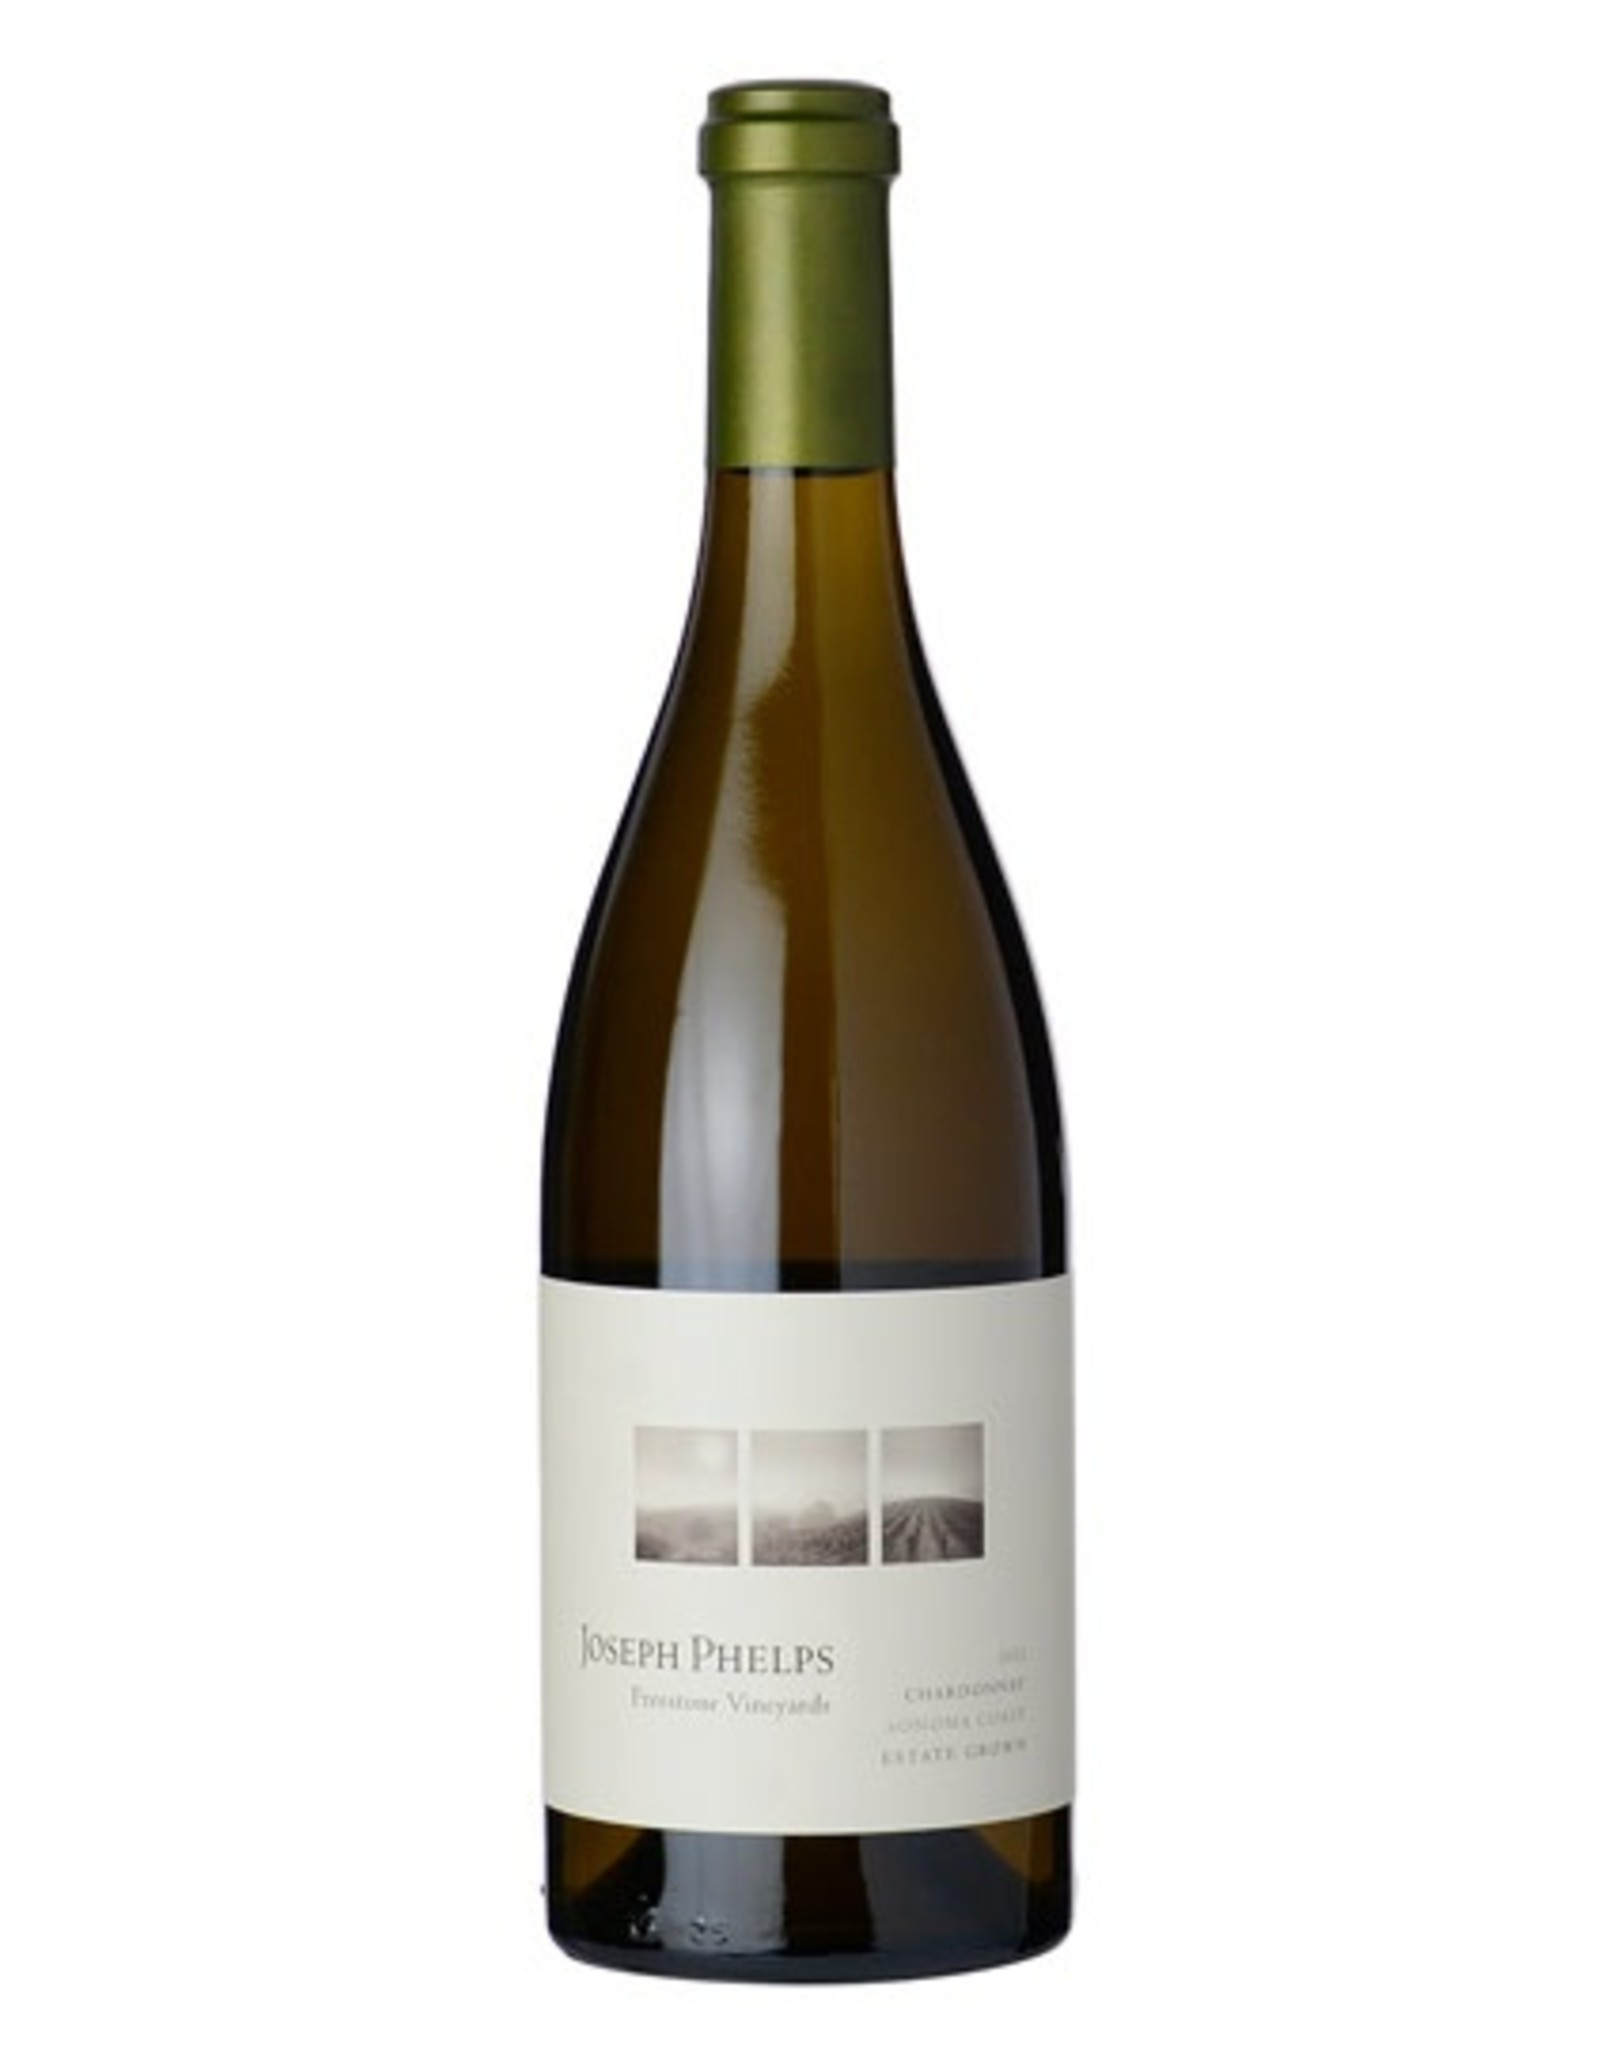 White Wine 2012, Joseph Phelps, Chardonnay, Freestone Vineyard, Sonoma County, California, 14% Alc, CT90, TW93